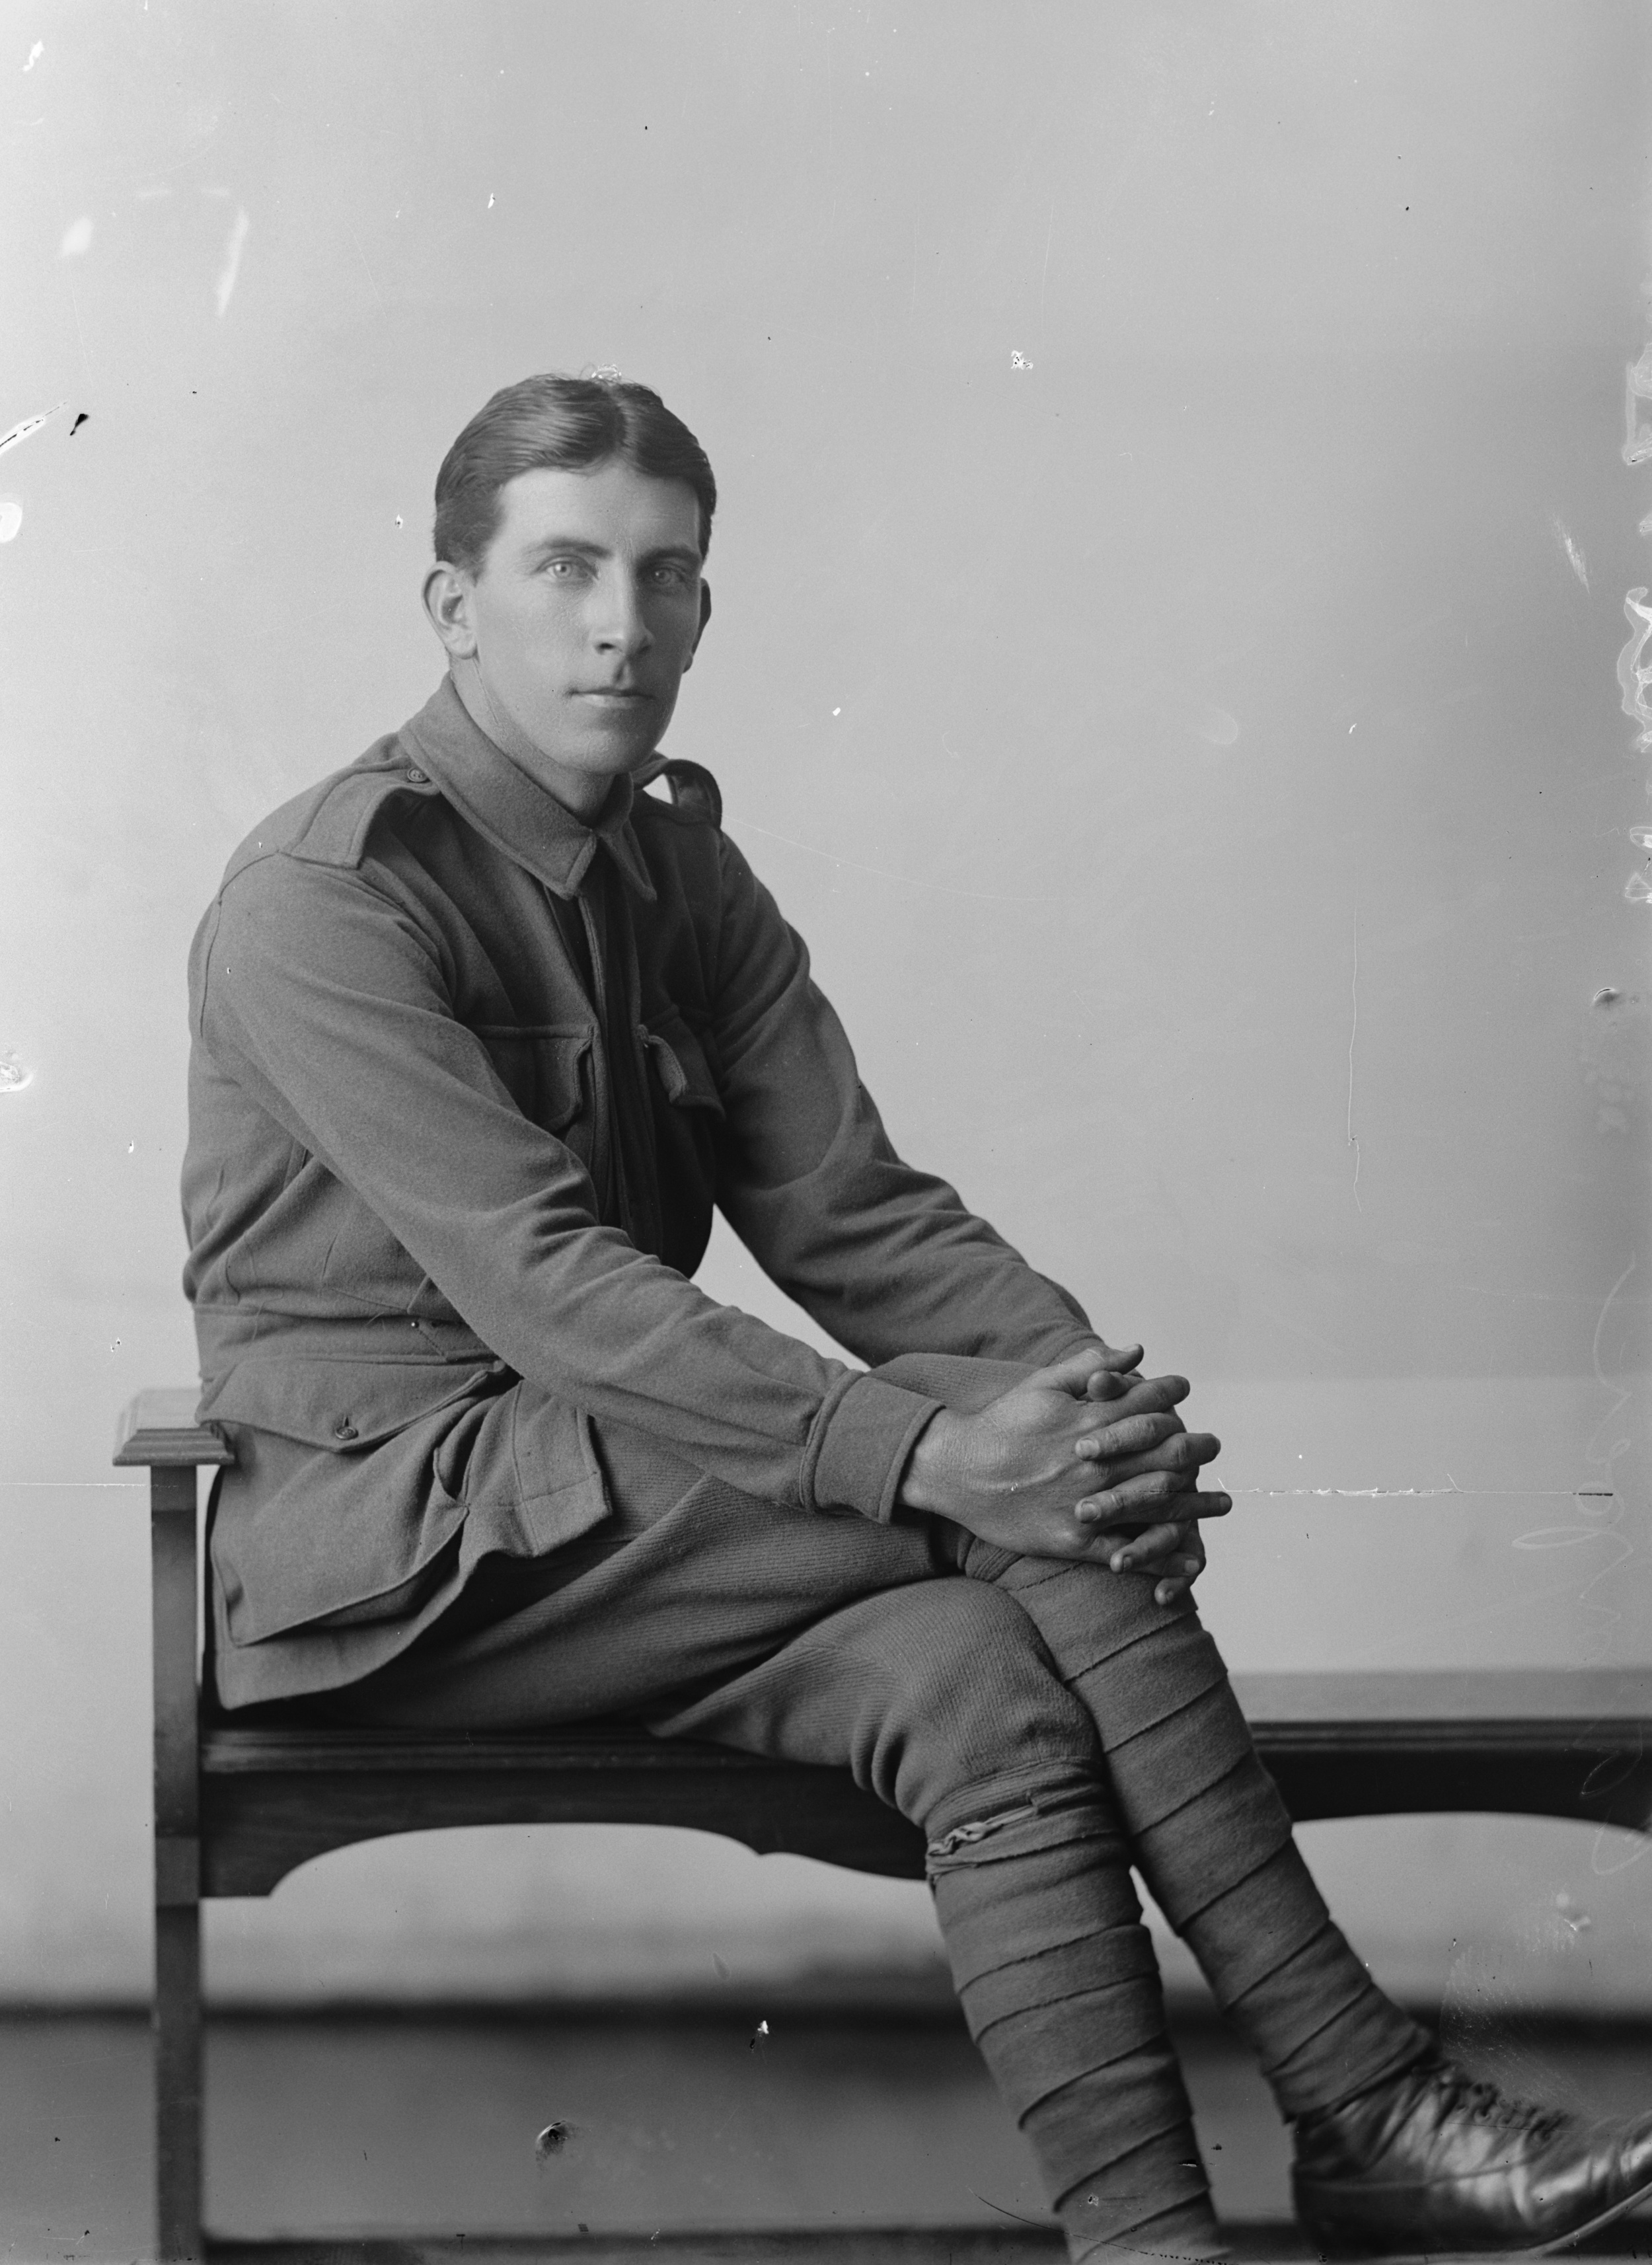 Photographed at the Dease Studio, 117 Barrack Street Perth WA Image courtesy of the State Library of Western Australia: 108196